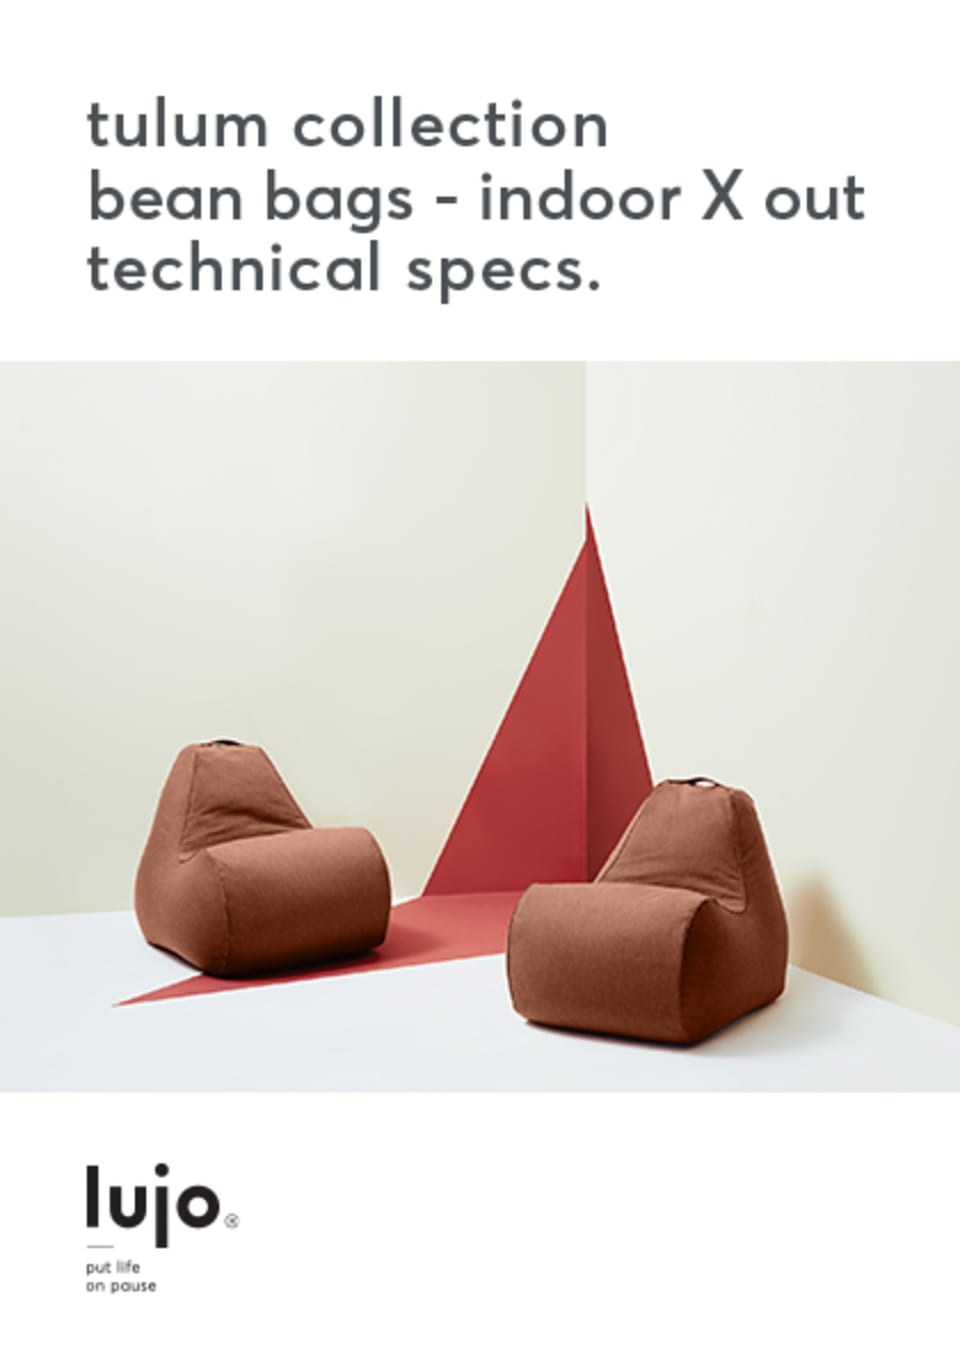 https://cdn.accentuate.io/4371647889506/11726231994466/Lujo_Technical-Specs_Tulum-Bean-Bags_Indoor-X-Out-v1583358112036.pdf